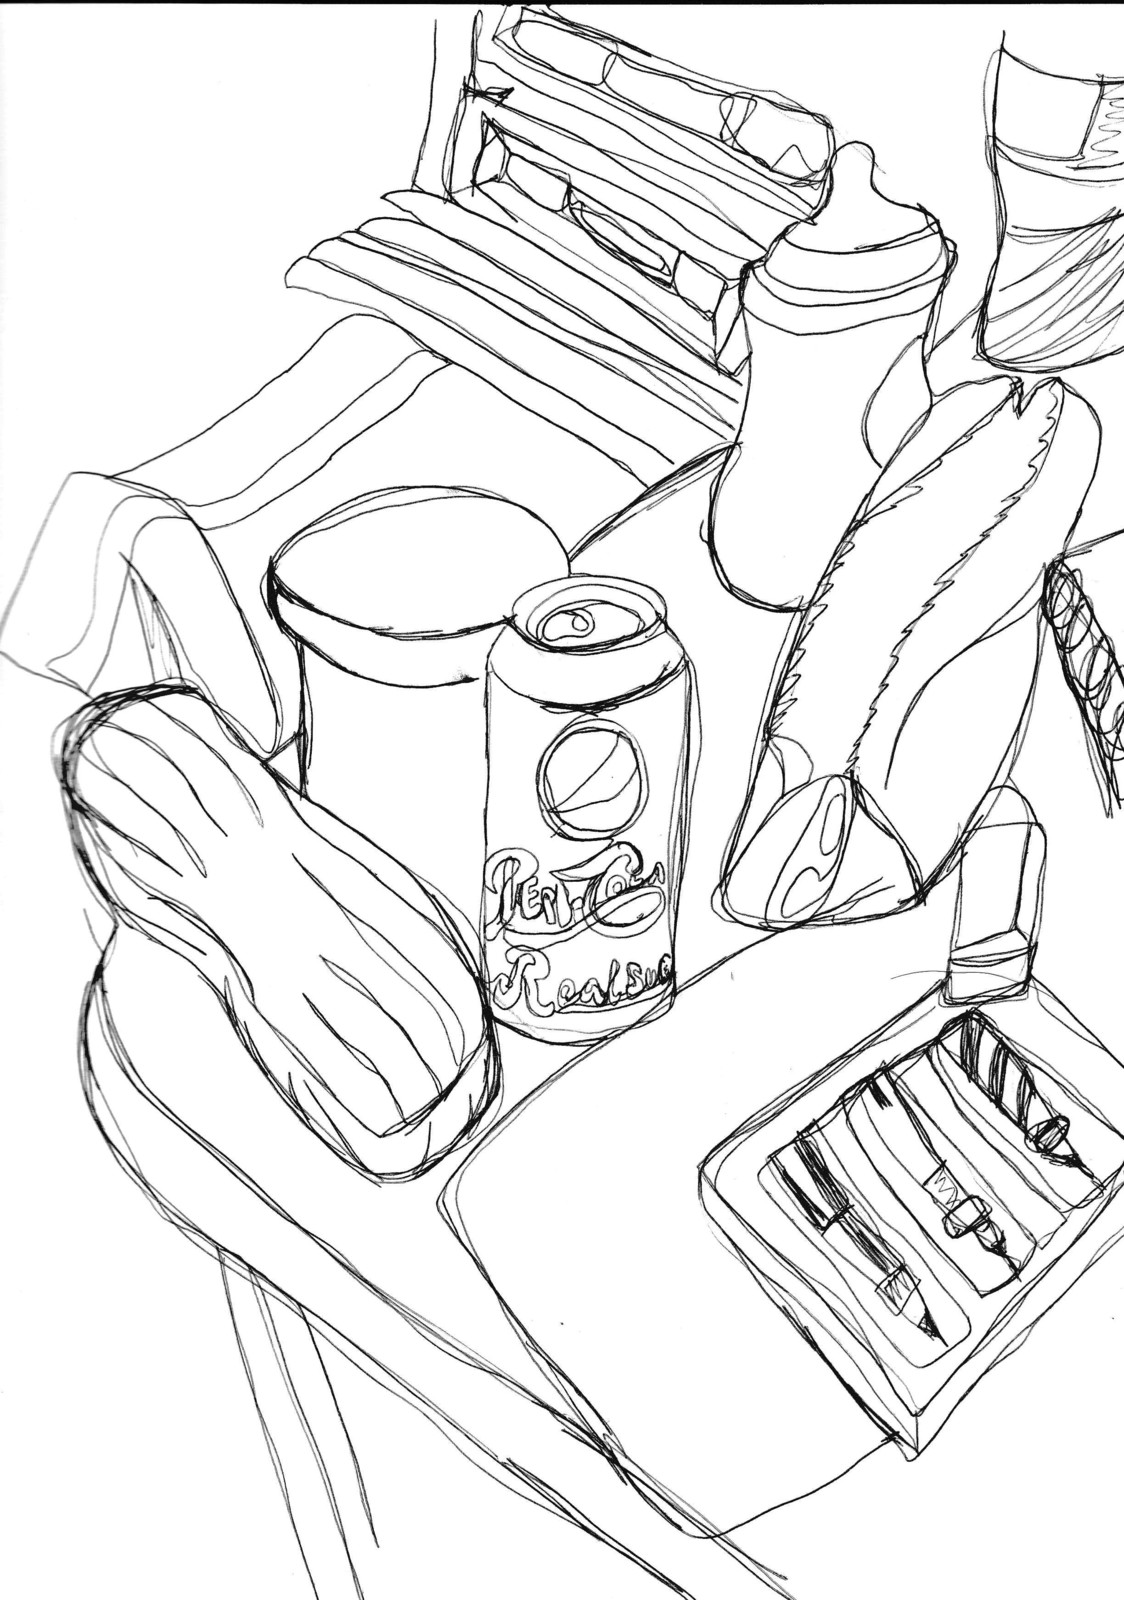 Continuous lines of a folding table with an eyeglass case, diaper rash cream, pepsi can, paper, coaster, eraser, pencil case, baby bottle, water bottle, and planner on it. Behind it on the floor is a towel and a dresser.